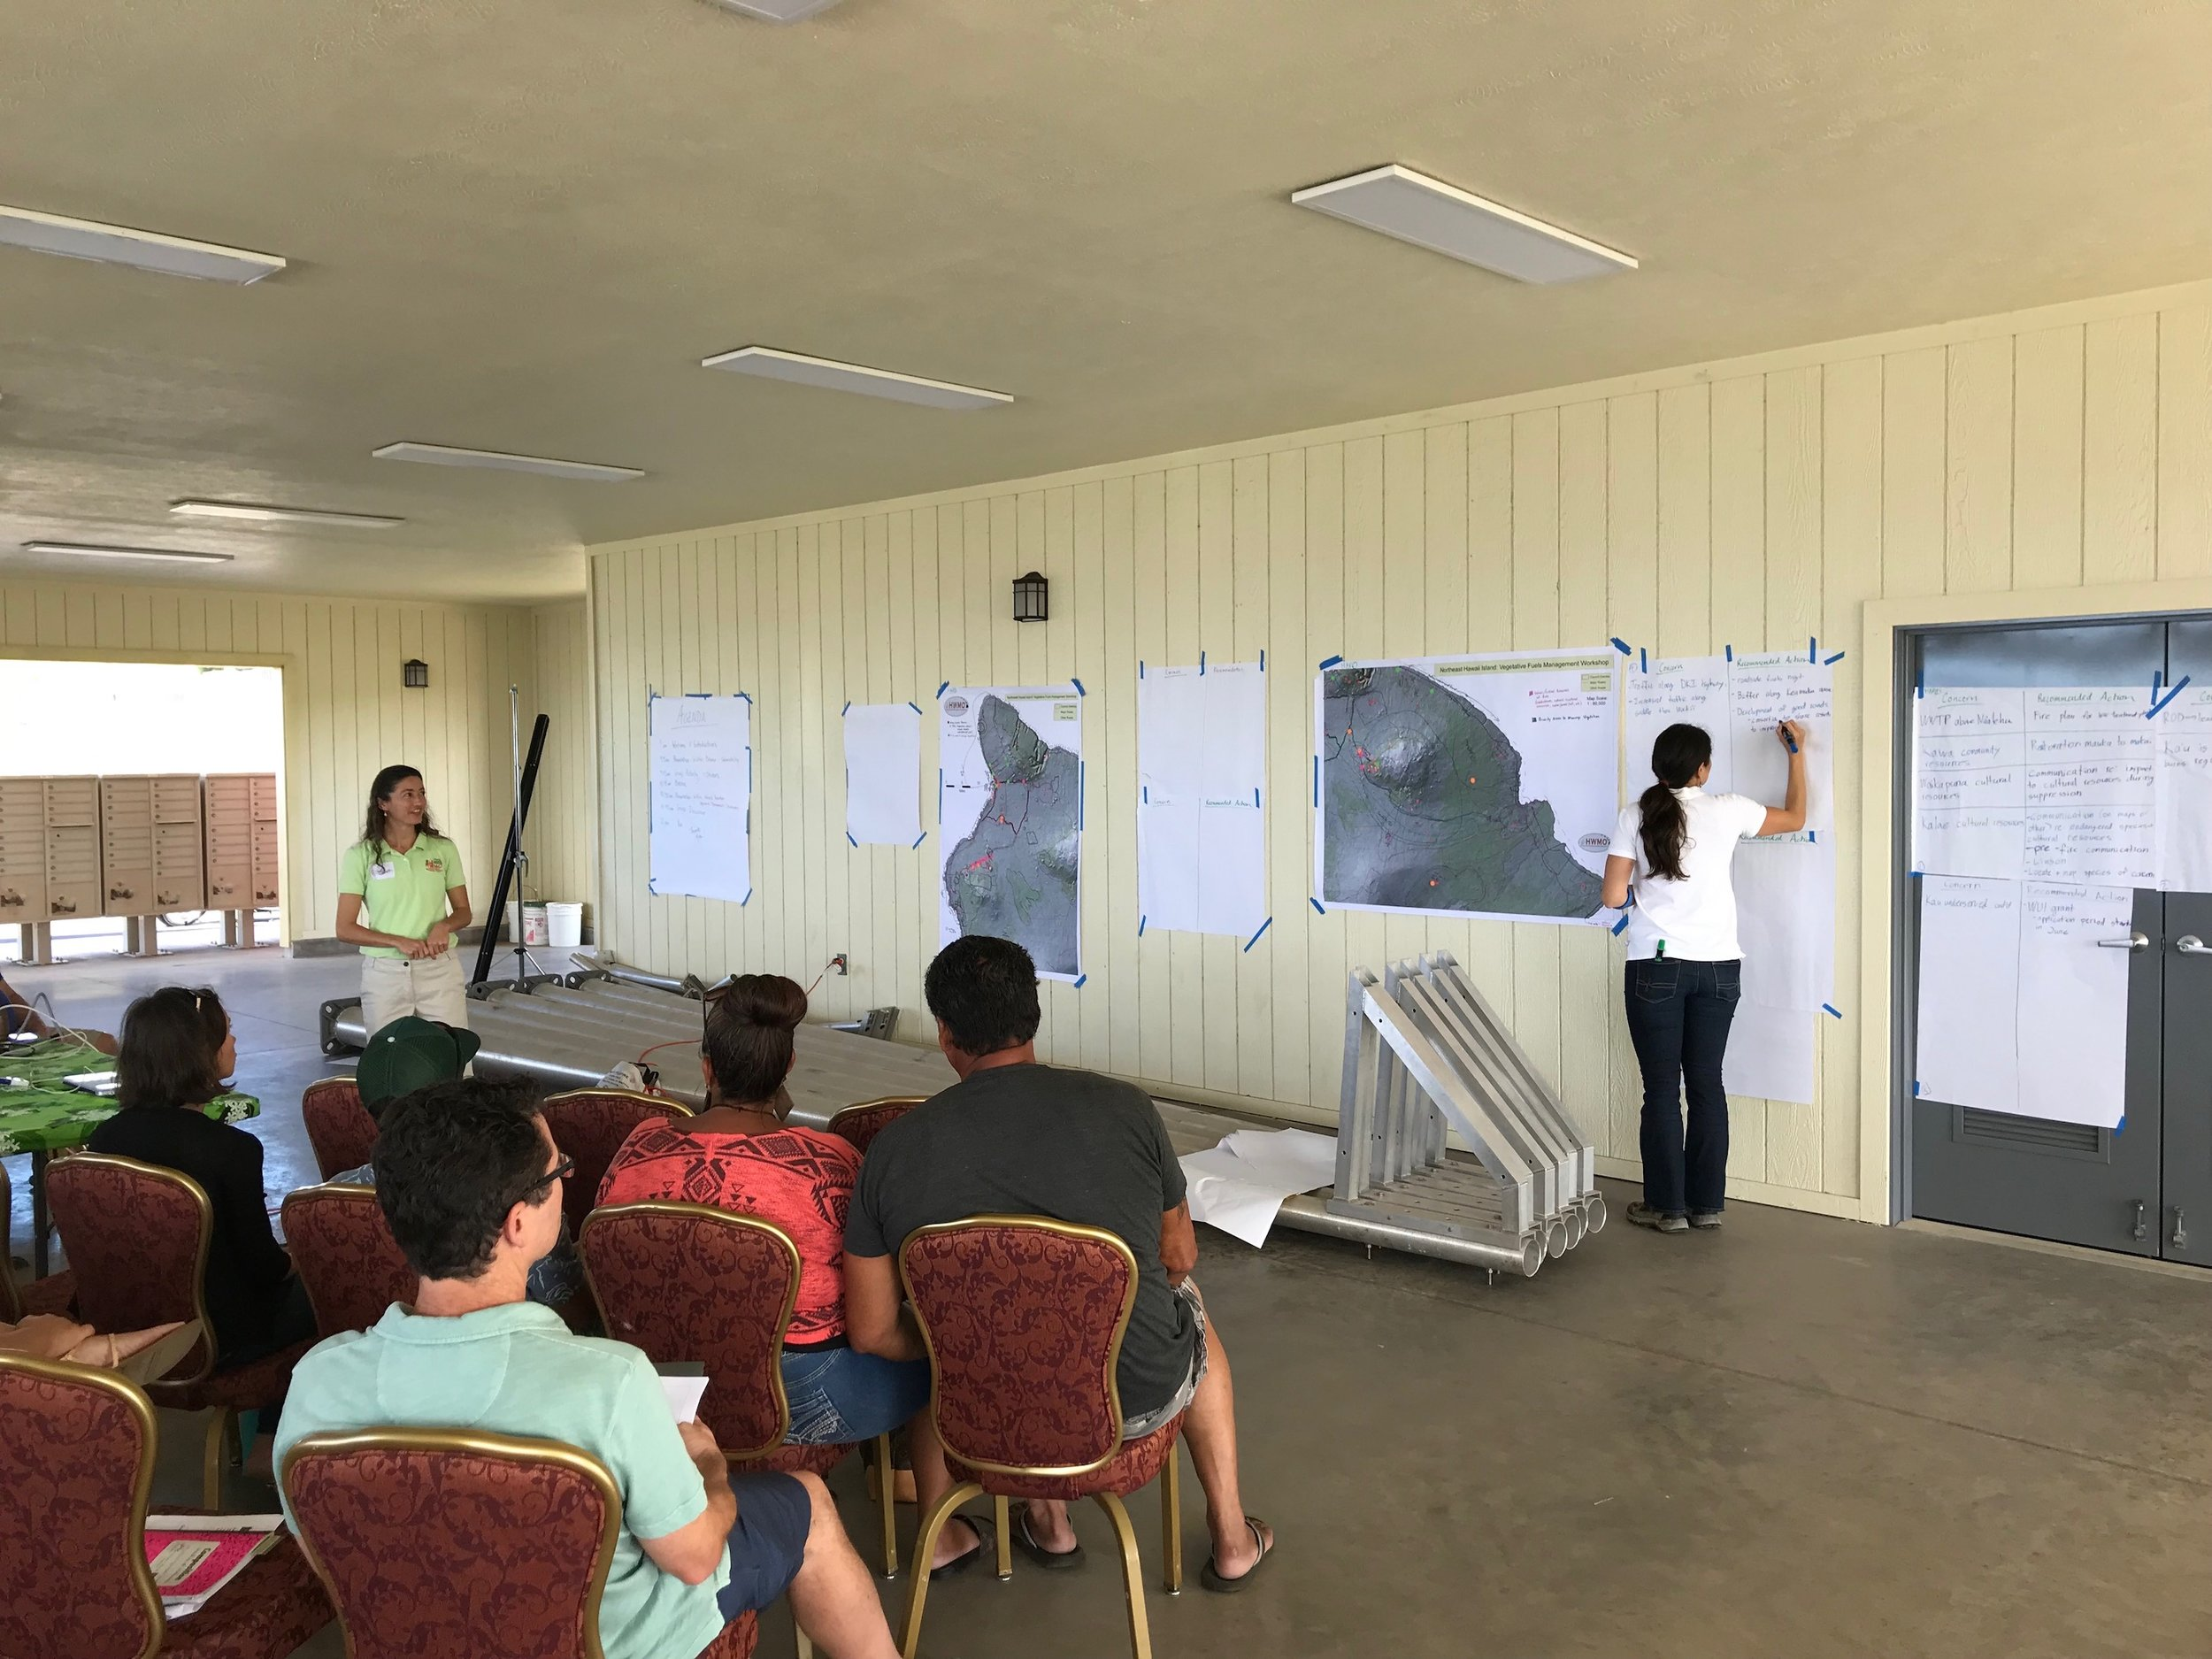 Hawaii Island Kailapa Vegetative Fuels Management Collaborative Action Planning Workshop_2_26_2019_61.jpg